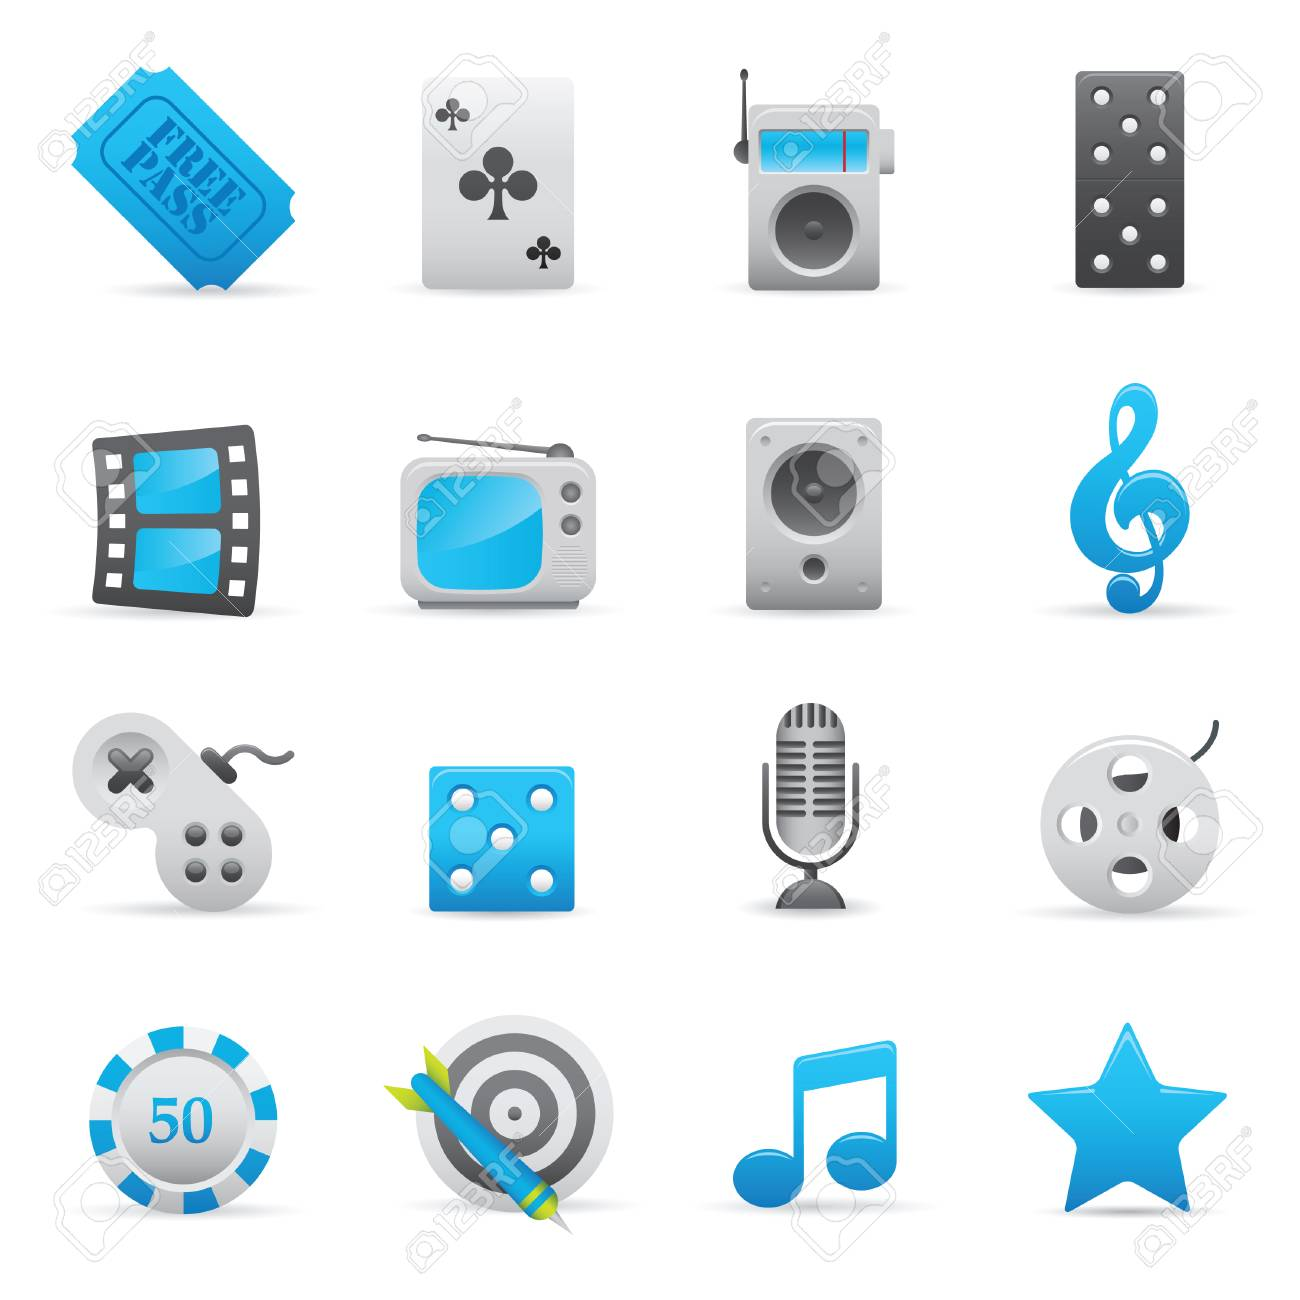 Professional icons for your website, application, or presentation. Stock Vector - 7292974